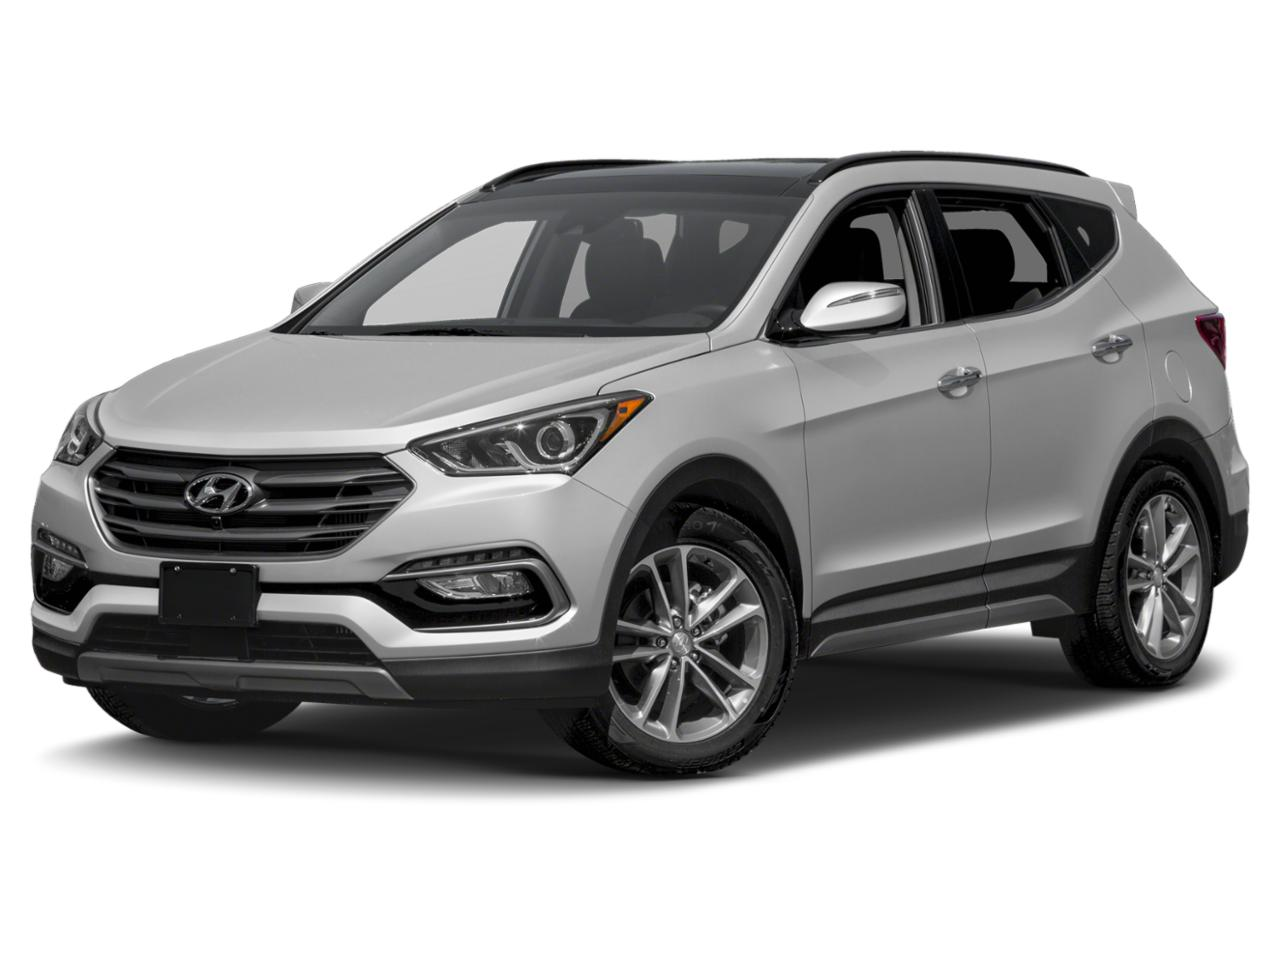 2018 Hyundai Santa Fe Sport Vehicle Photo in Gulfport, MS 39503